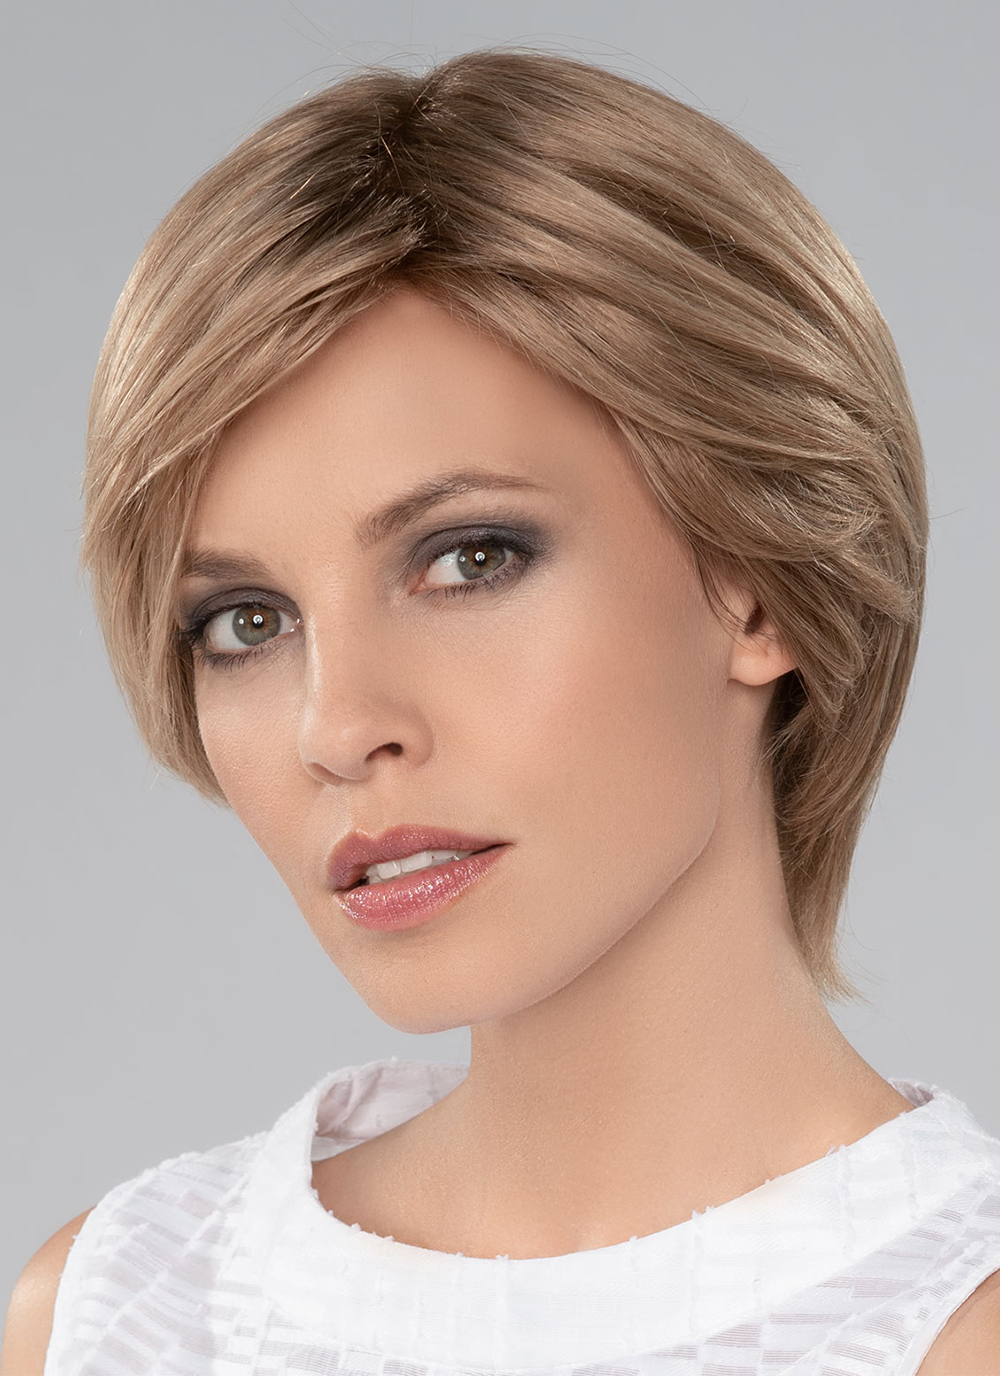 The Dia has lots of styling options with a stylish longer neck, the extra double layered soft mono top part, and a beautiful lace front hairline for a seamless natural look.